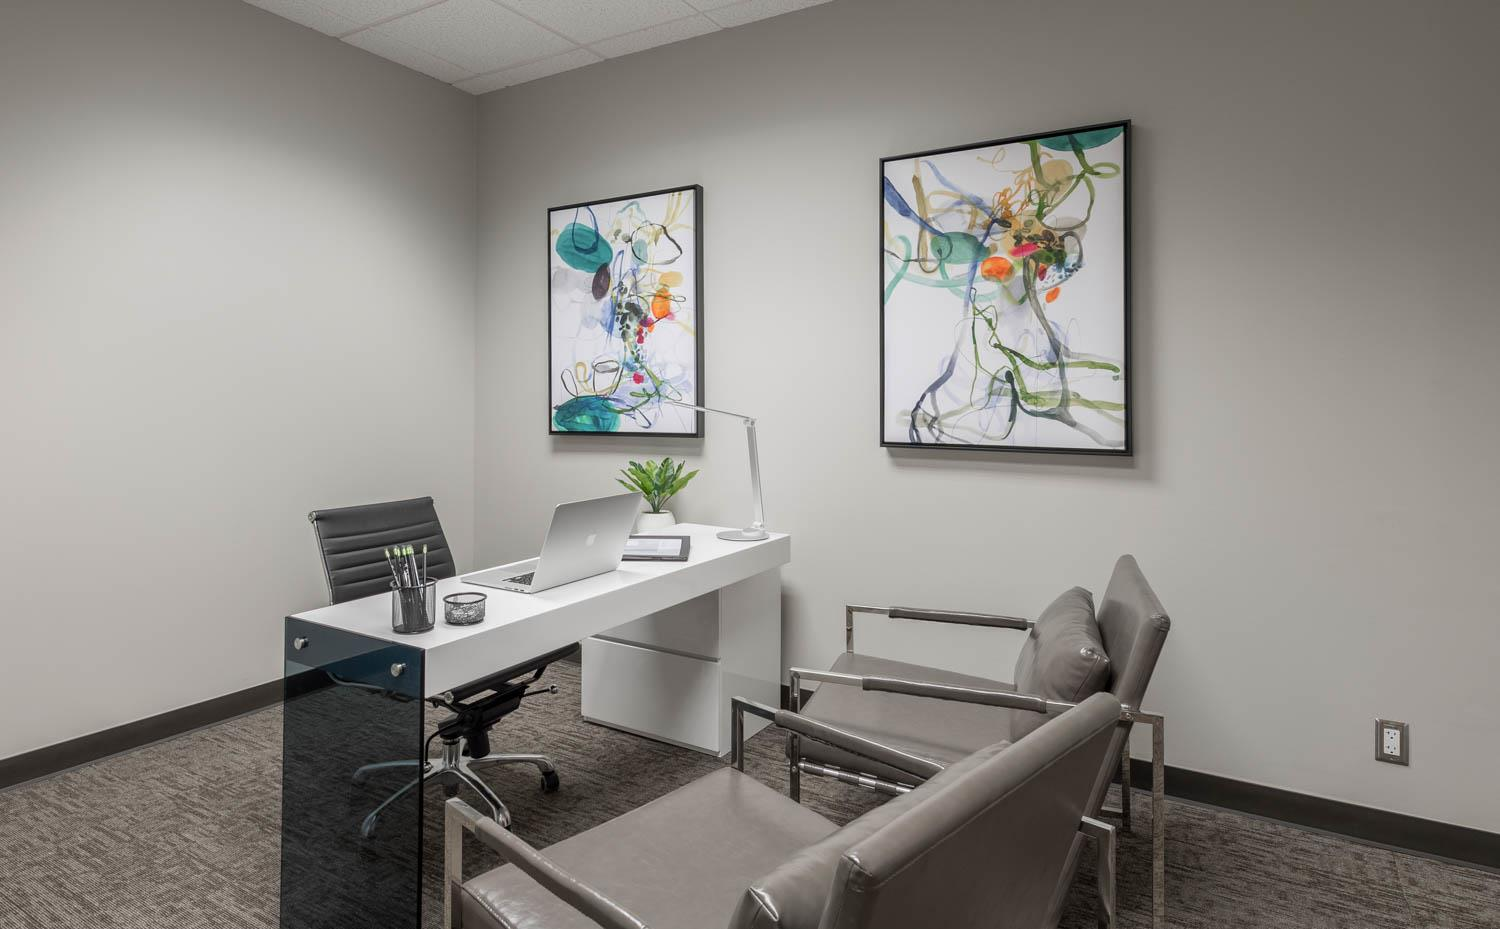 WORKSUITES   North Houston - INTERIOR OFFICE   1 PERSON